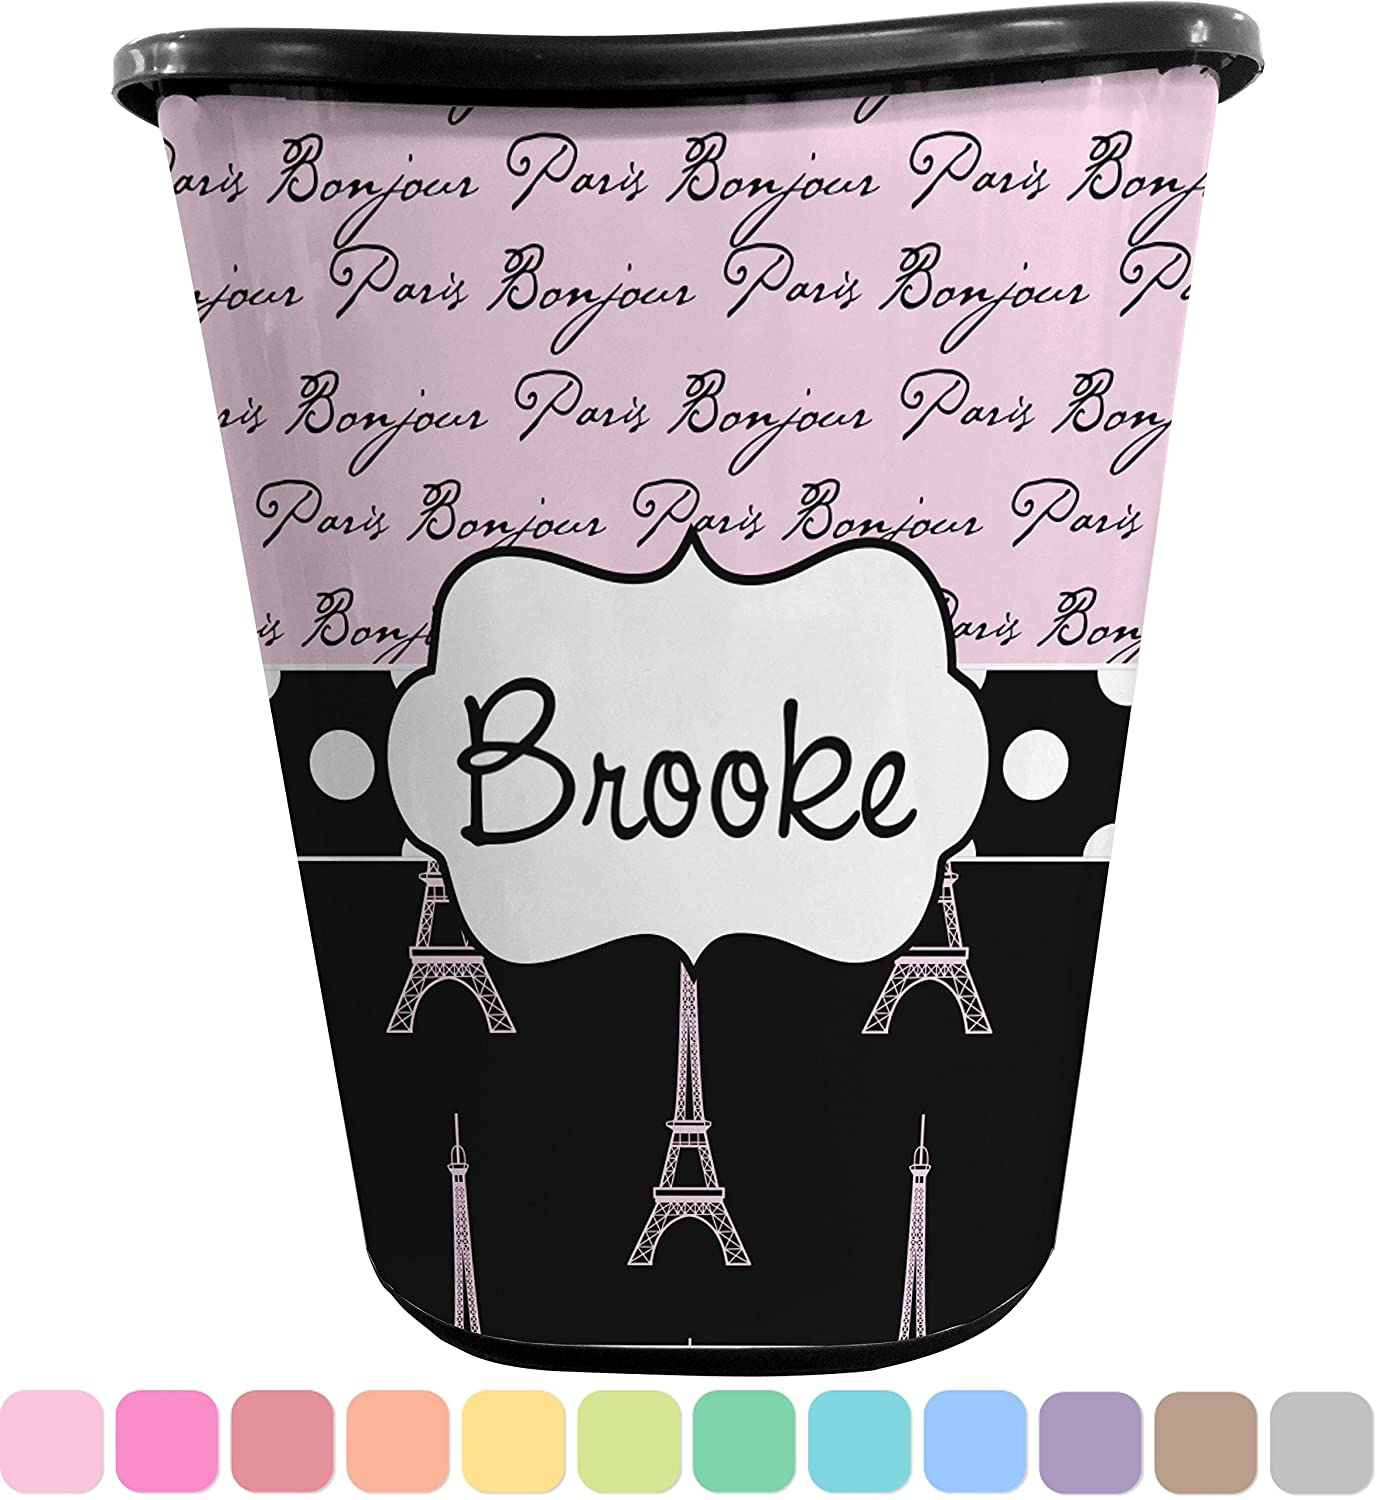 Paris Bonjour and Eiffel Tower Waste Basket (Black) (Personalized)